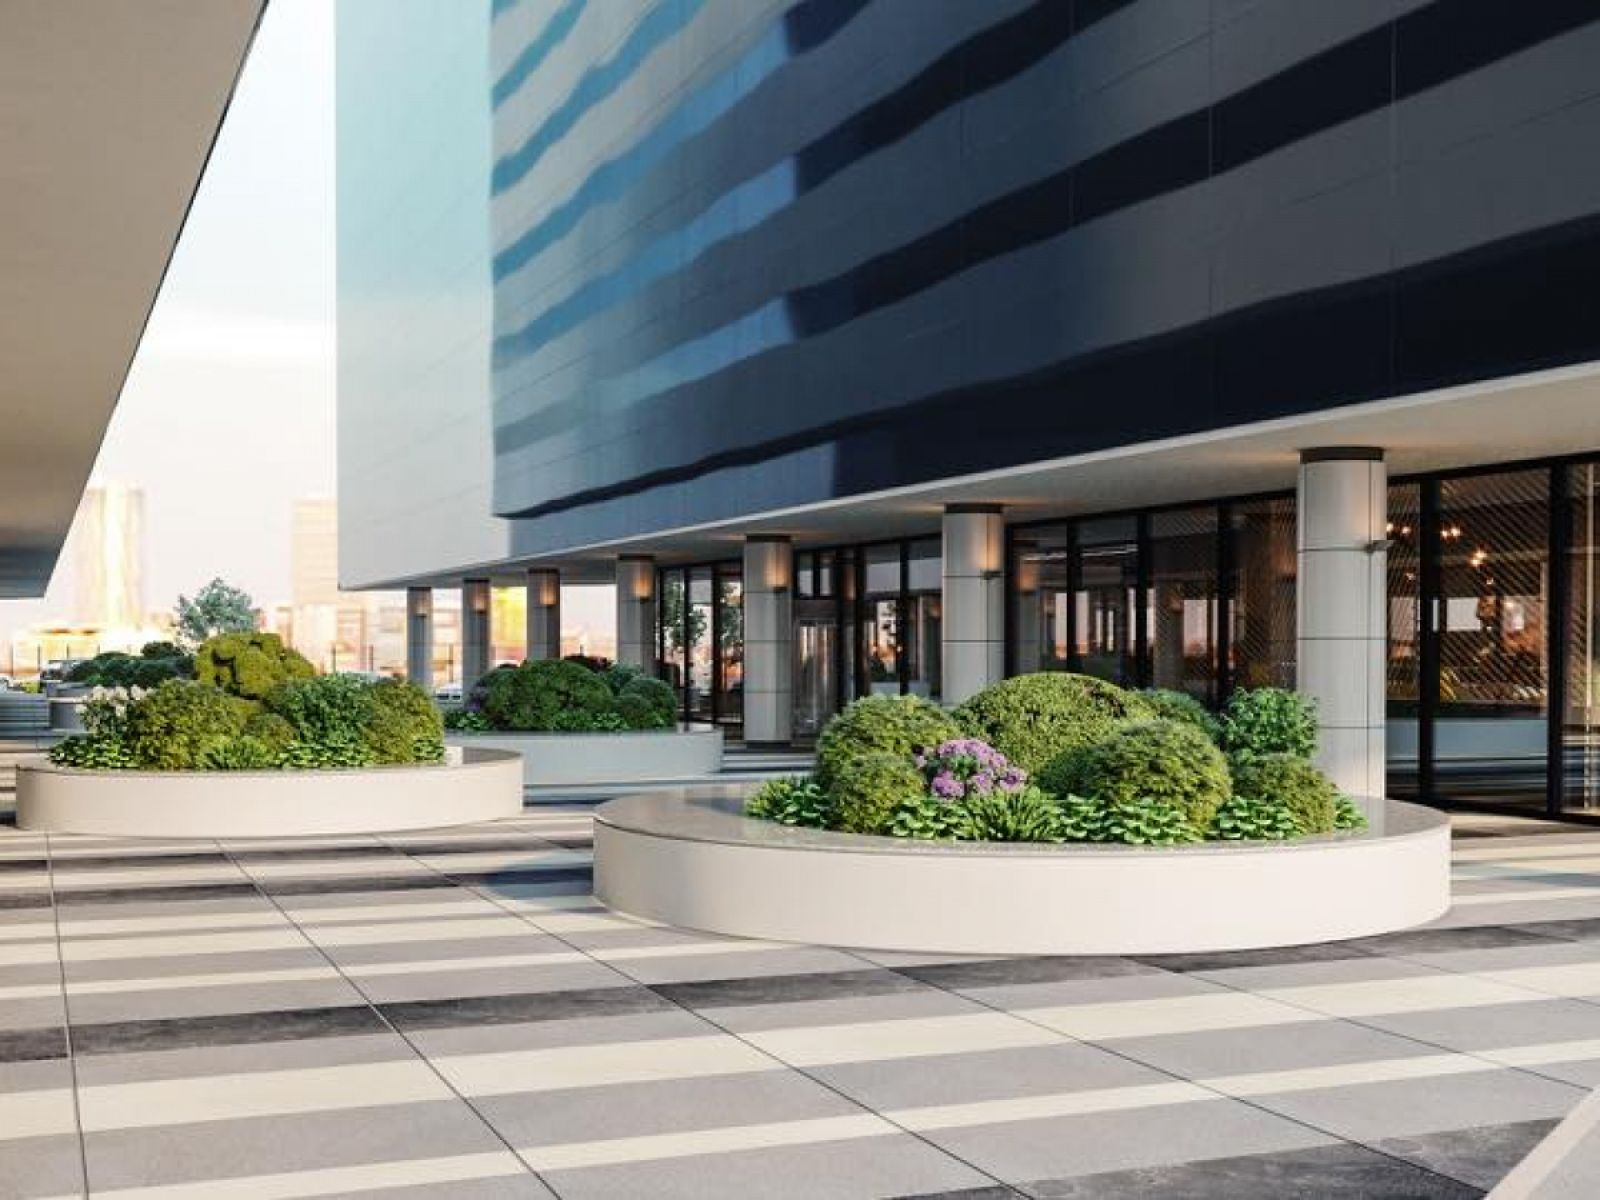 1 million EUR investment in a refurbishment process and a new design concept for One North Gate